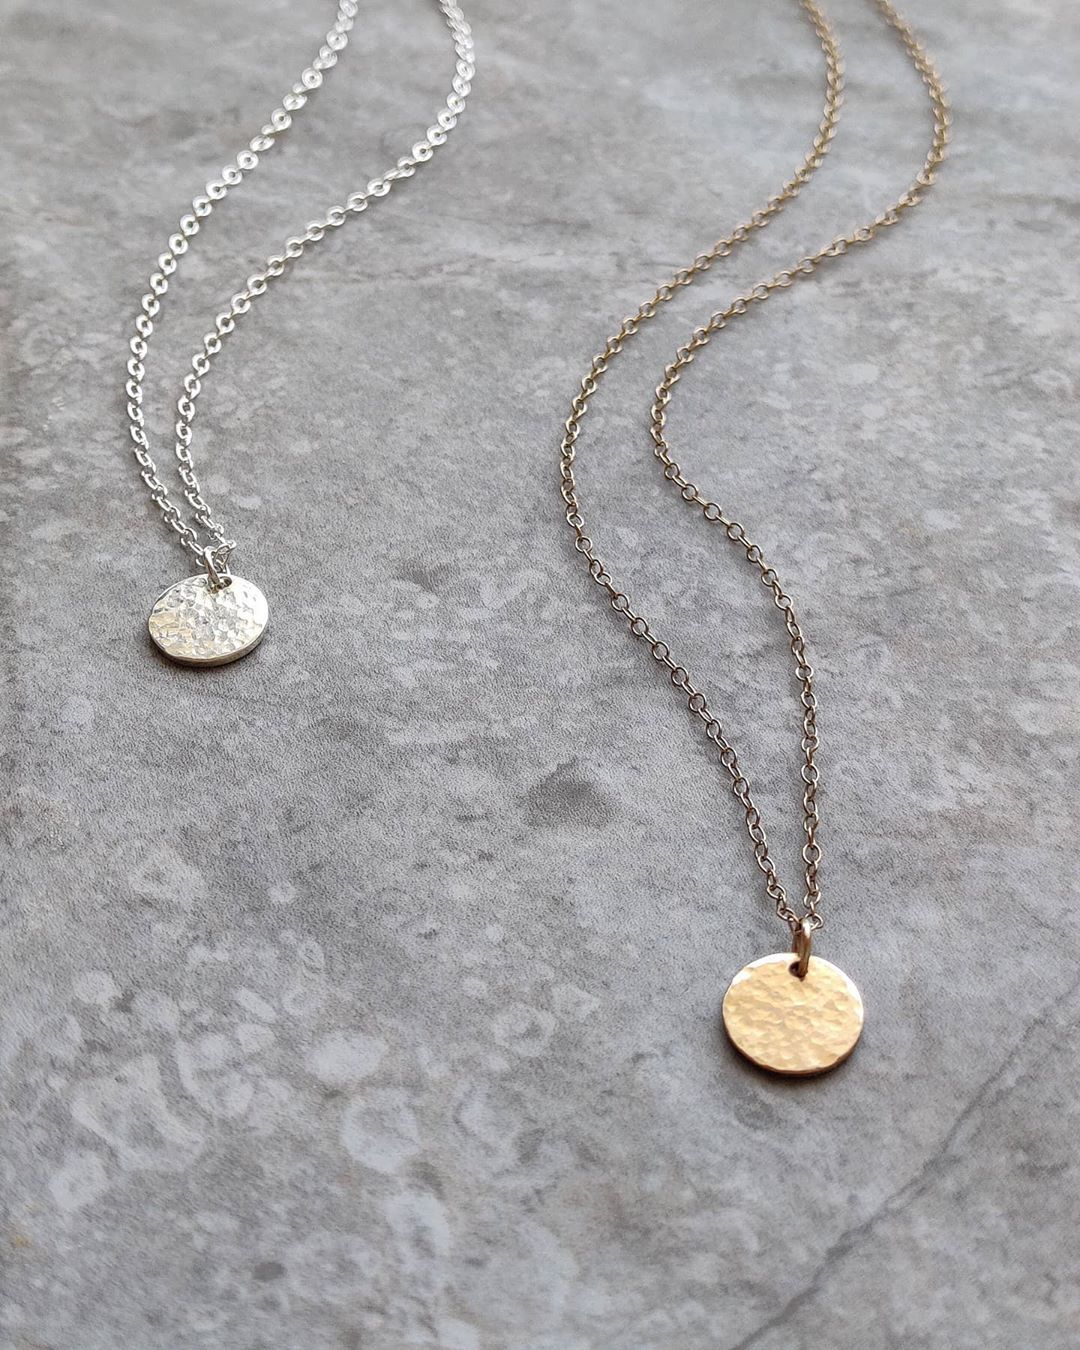 Our textured coins in silver and gold.